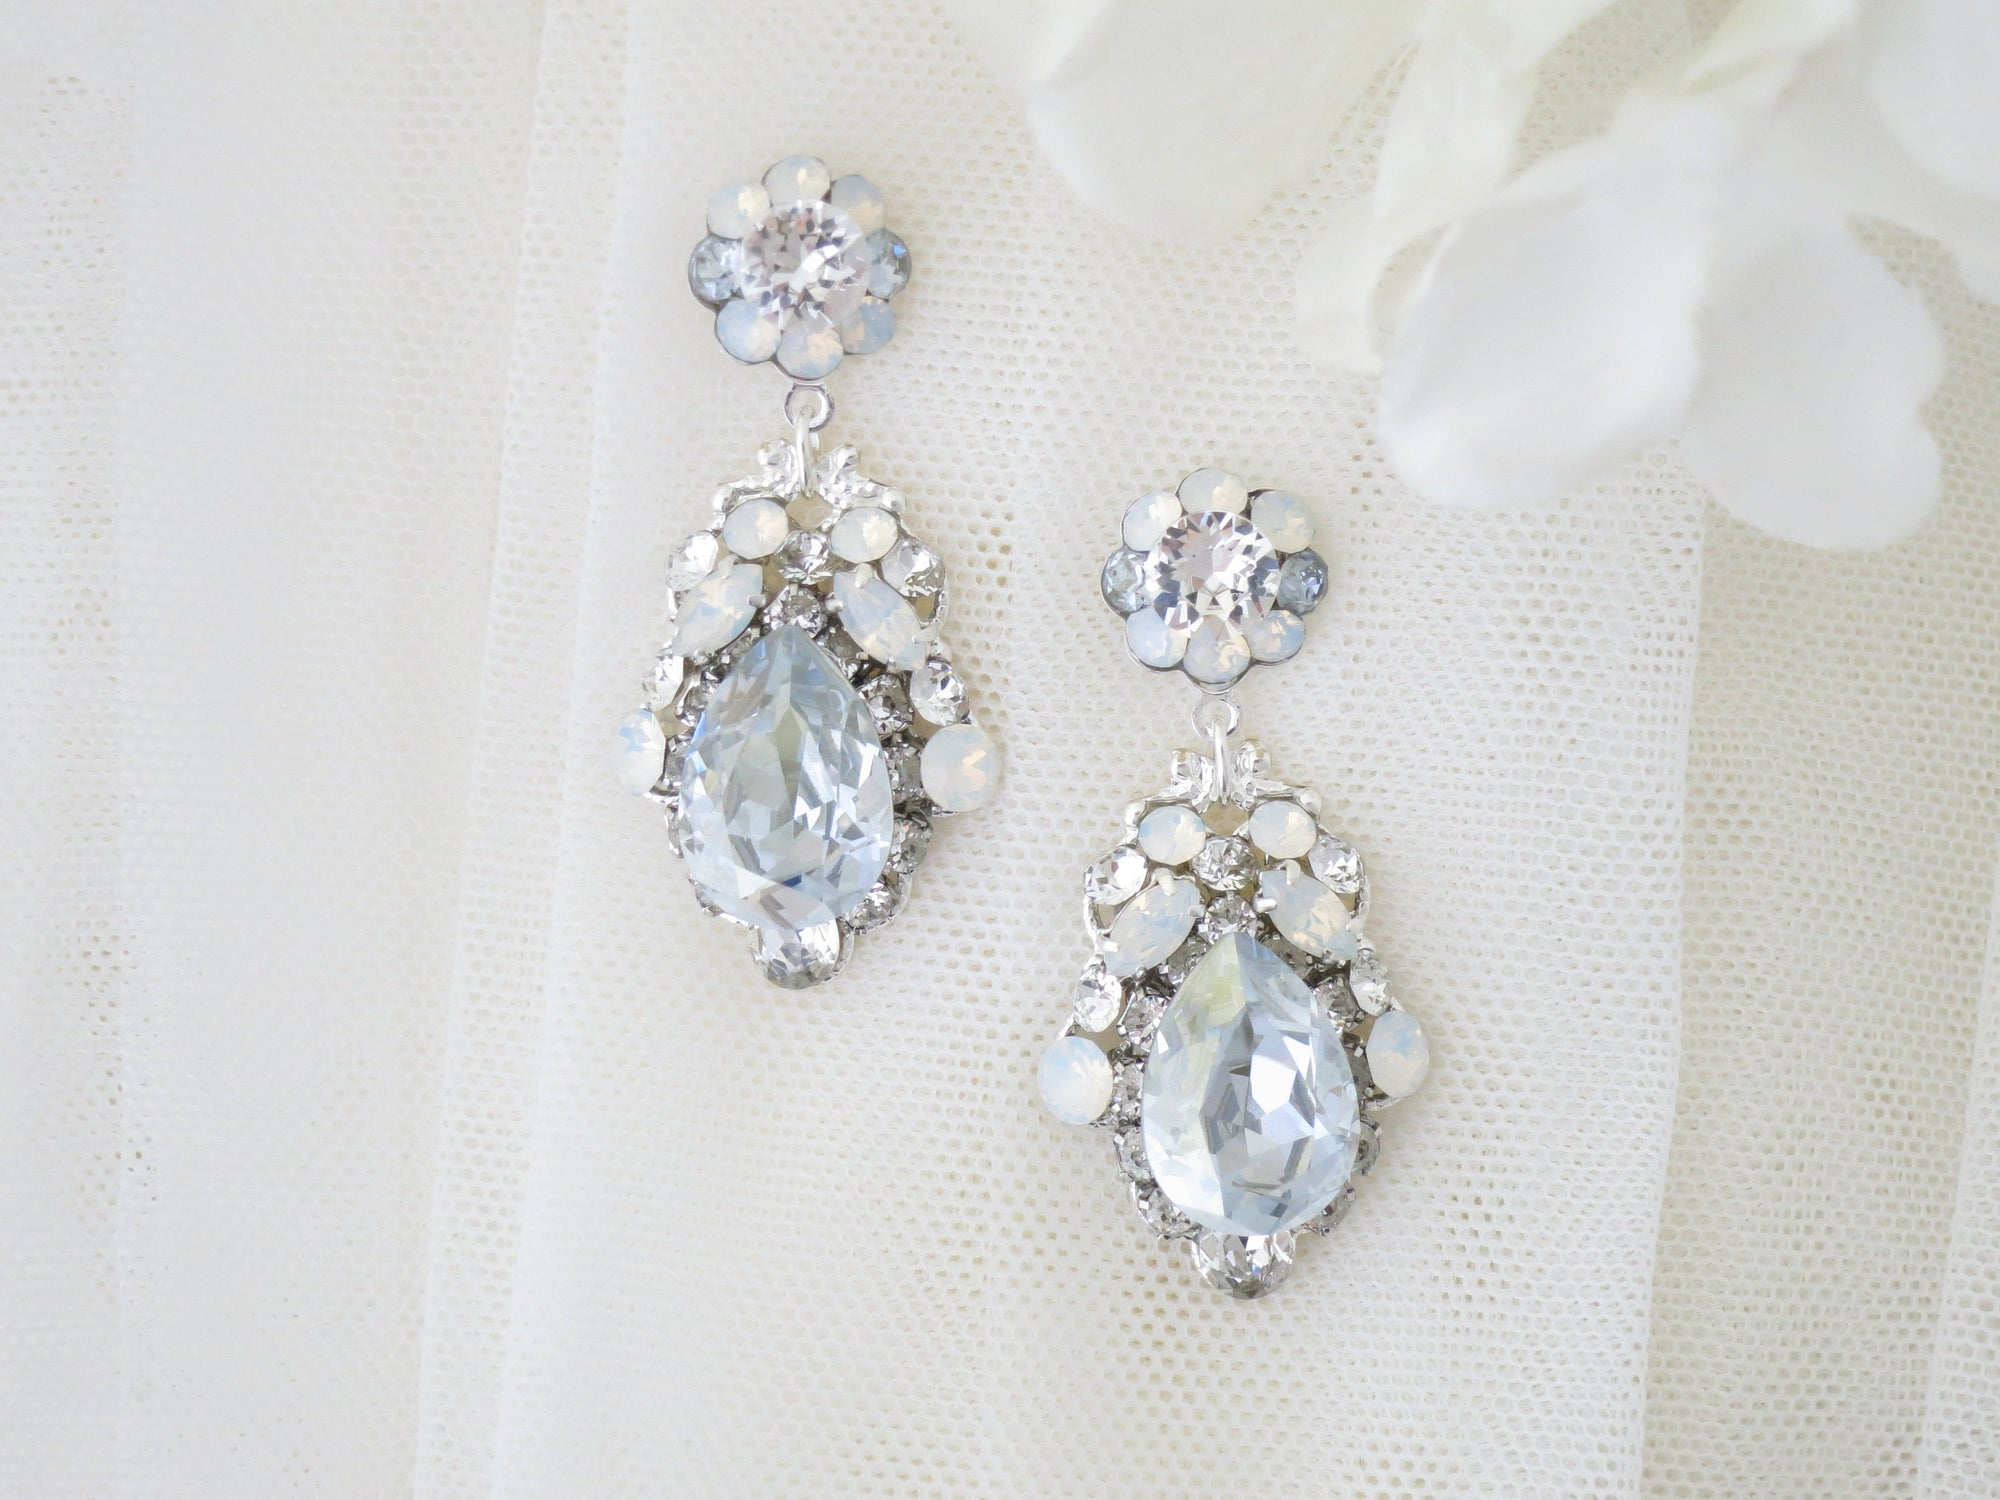 FROST:  Dusty Blue and White Opal Earrings - BlingBaddaBoom - Minimalist, Vintage, Modern Wedding and Bridal Jewelry